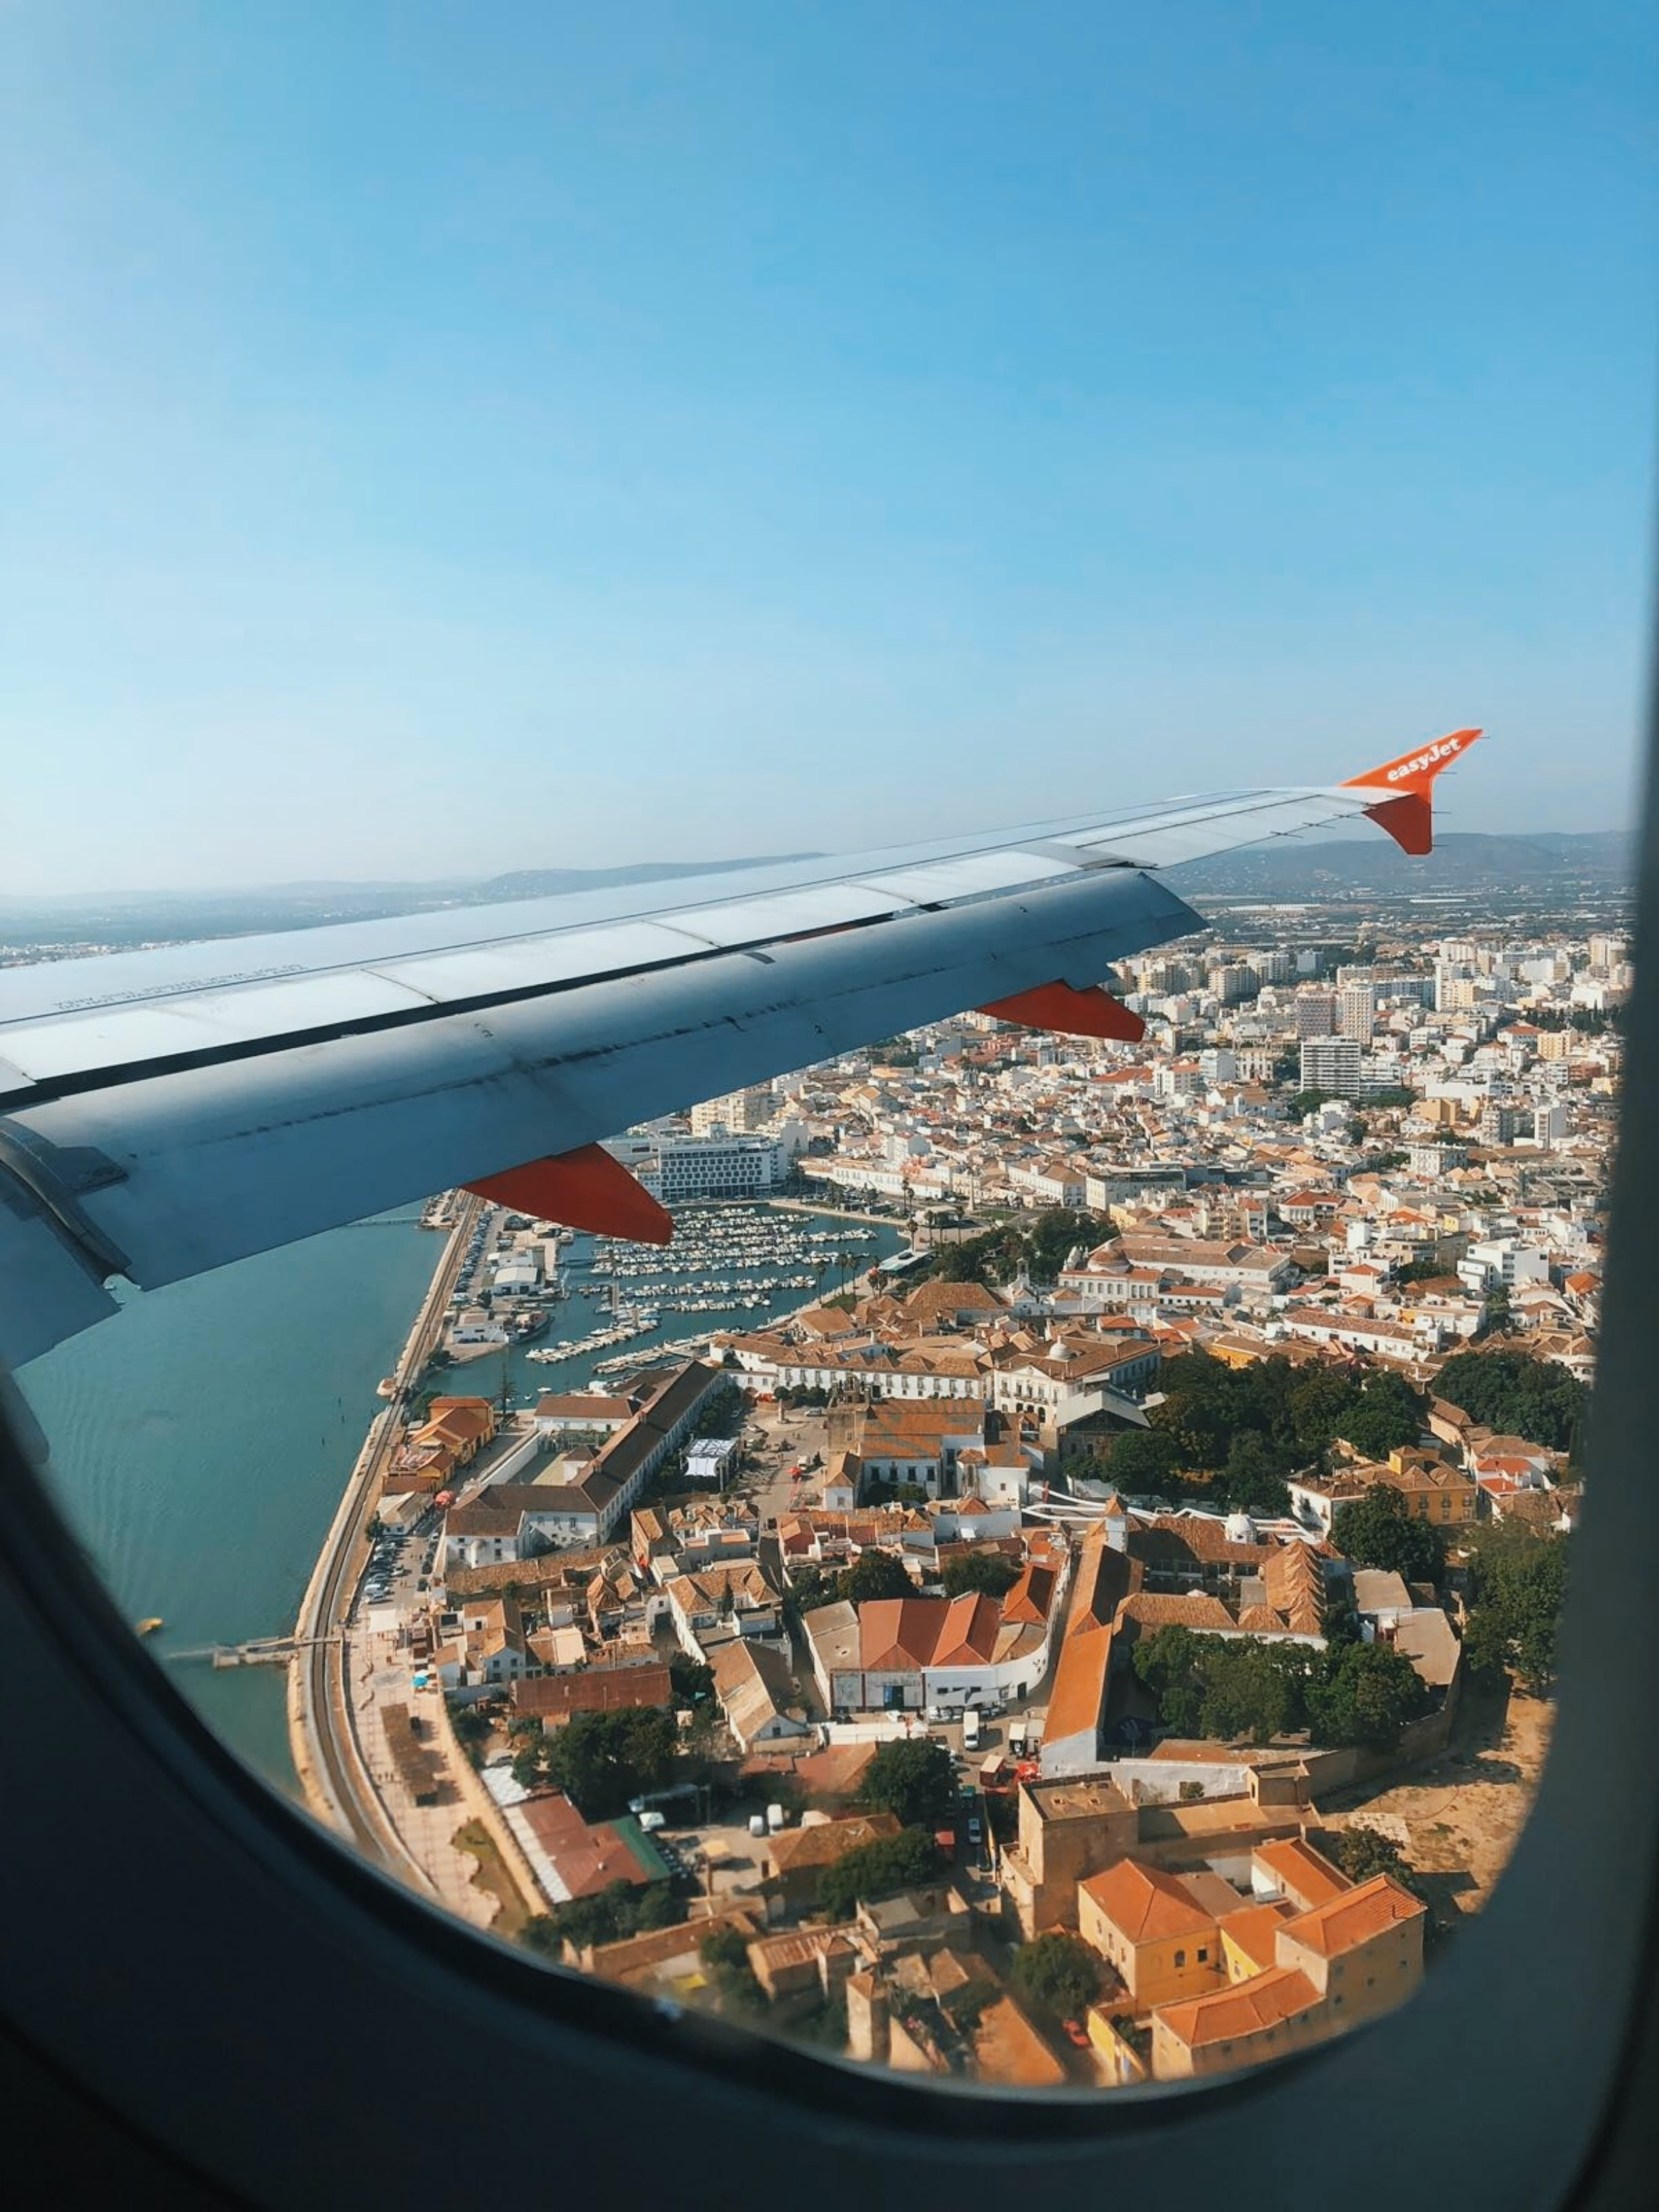 View of Faro from an airplane.